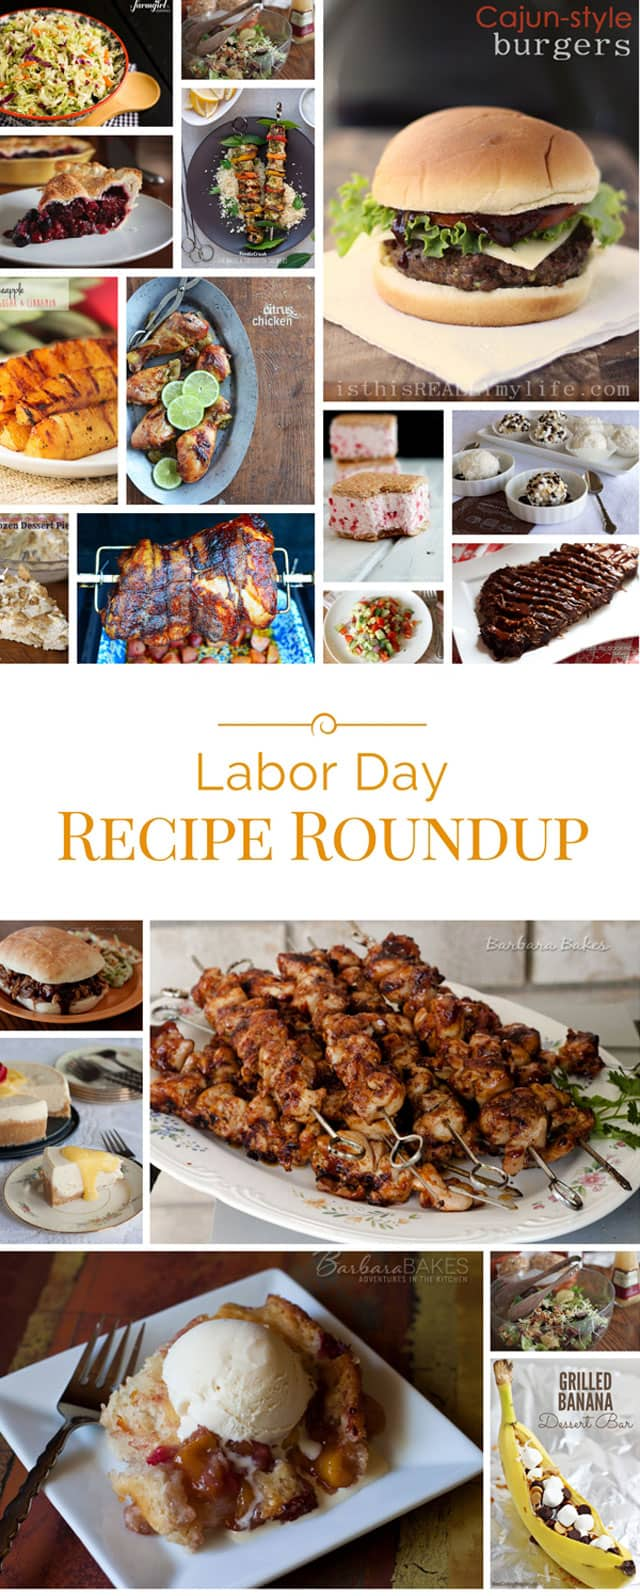 Collage of 50+ Mouth-watering Labor Day Recipes perfect for a Labor Day barbecue or picnic.